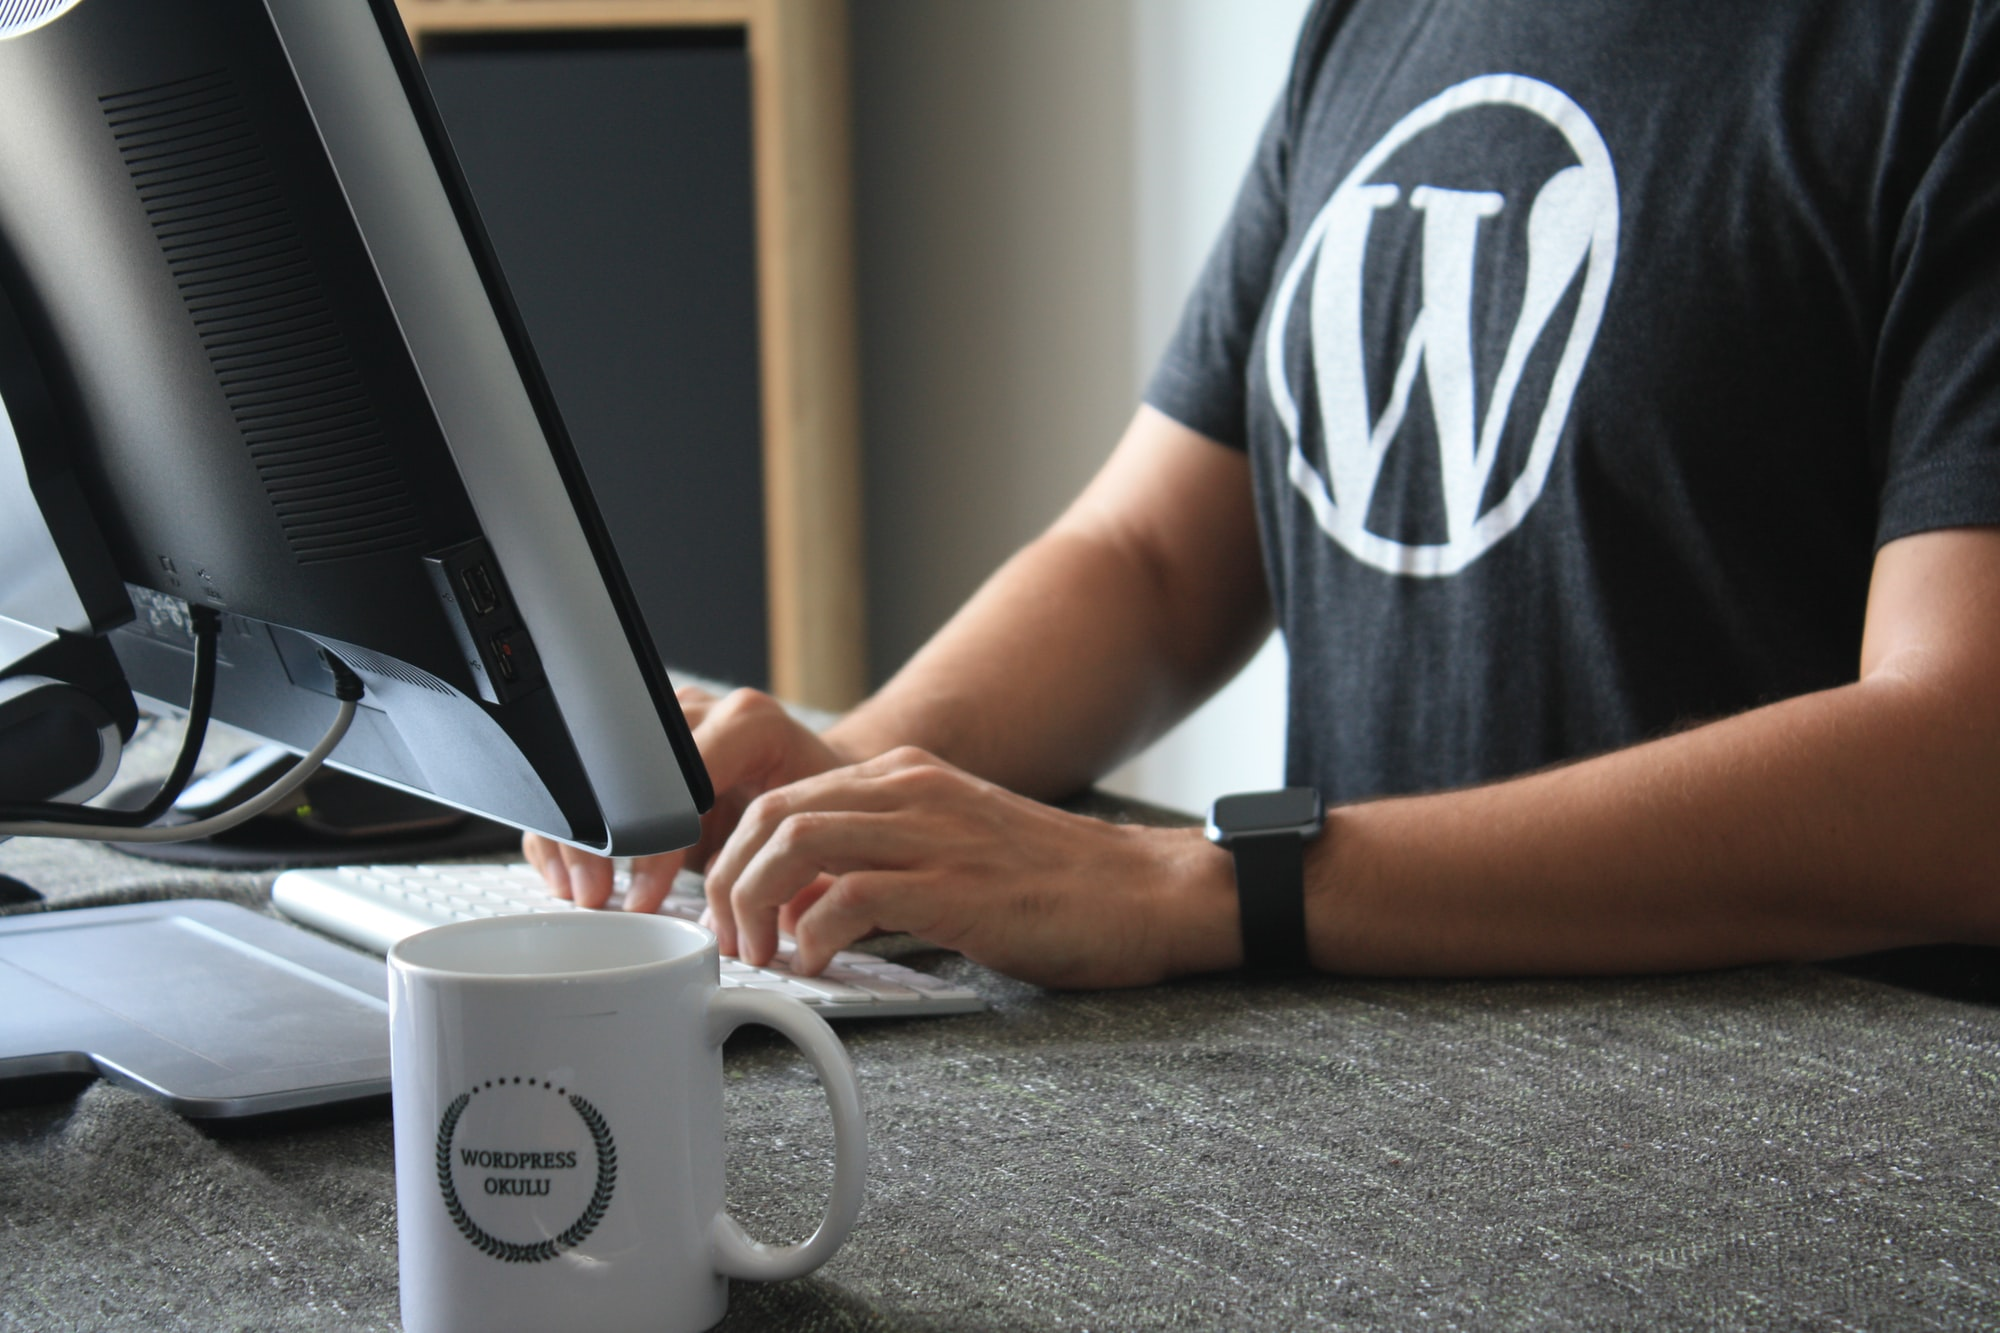 Wordpress Expert!